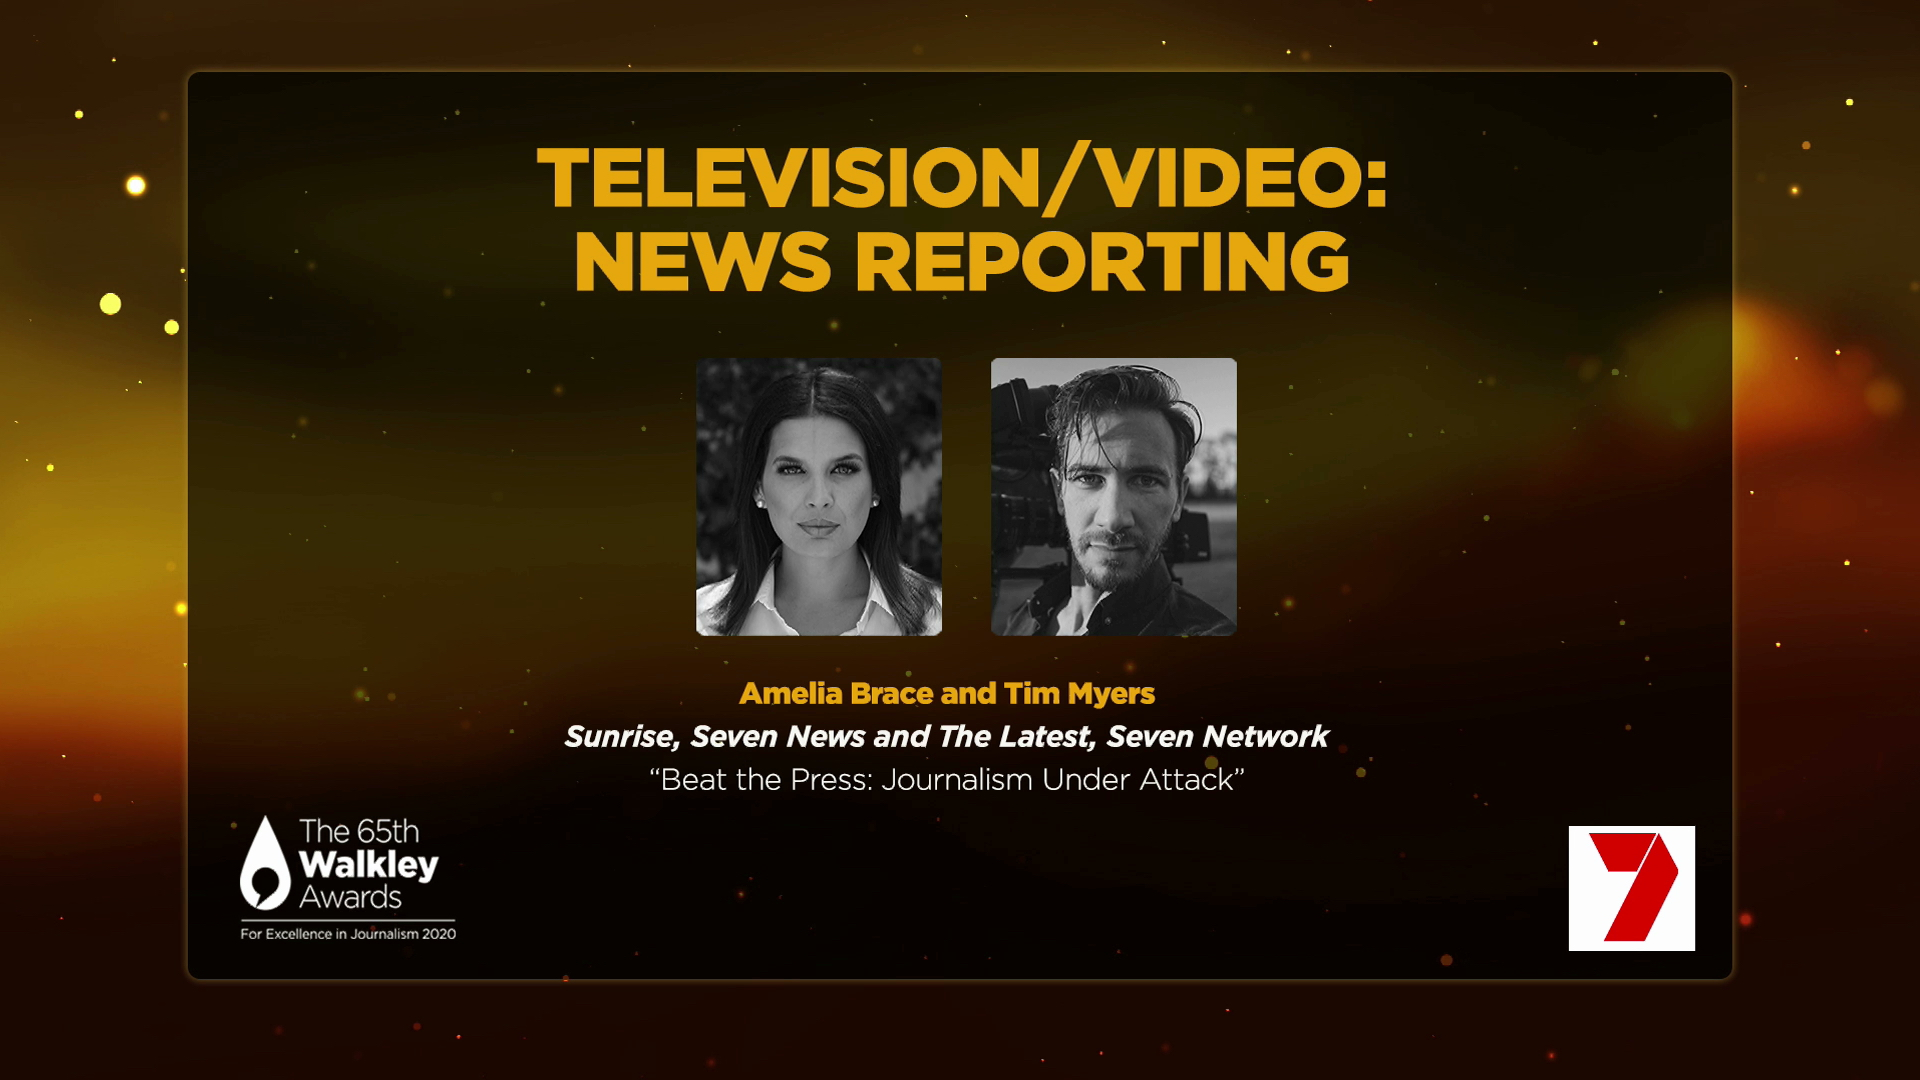 7NEWS US Bureau recognised with Walkley Award for Excellence in Journalism